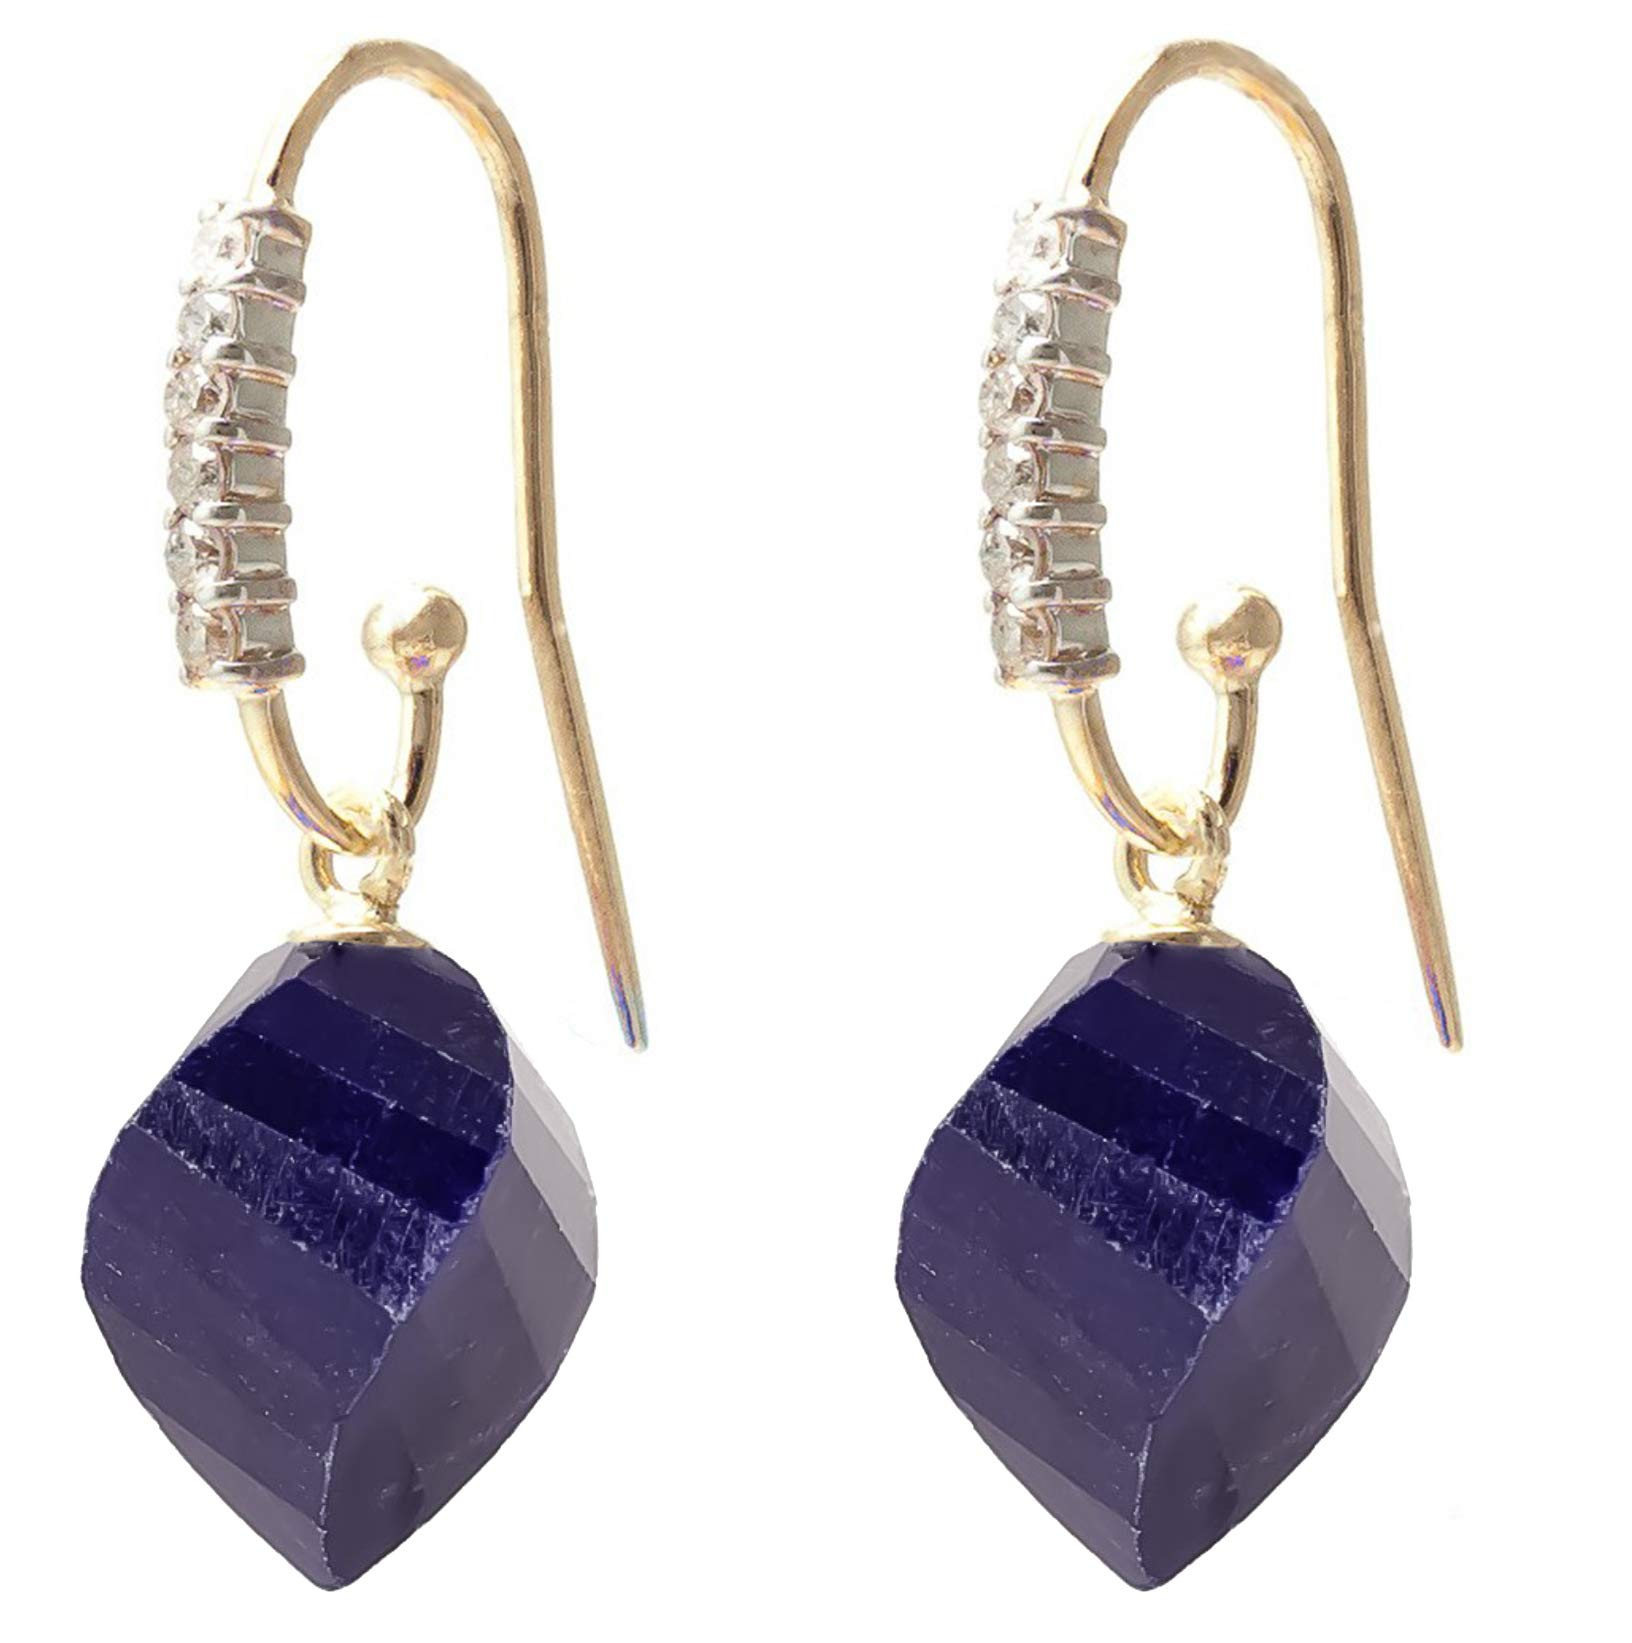 14k Yellow Gold Fish Hook Earrings with 0.18 Carat Diamonds and 30.50 Carat Twisted Briolette Sapphires